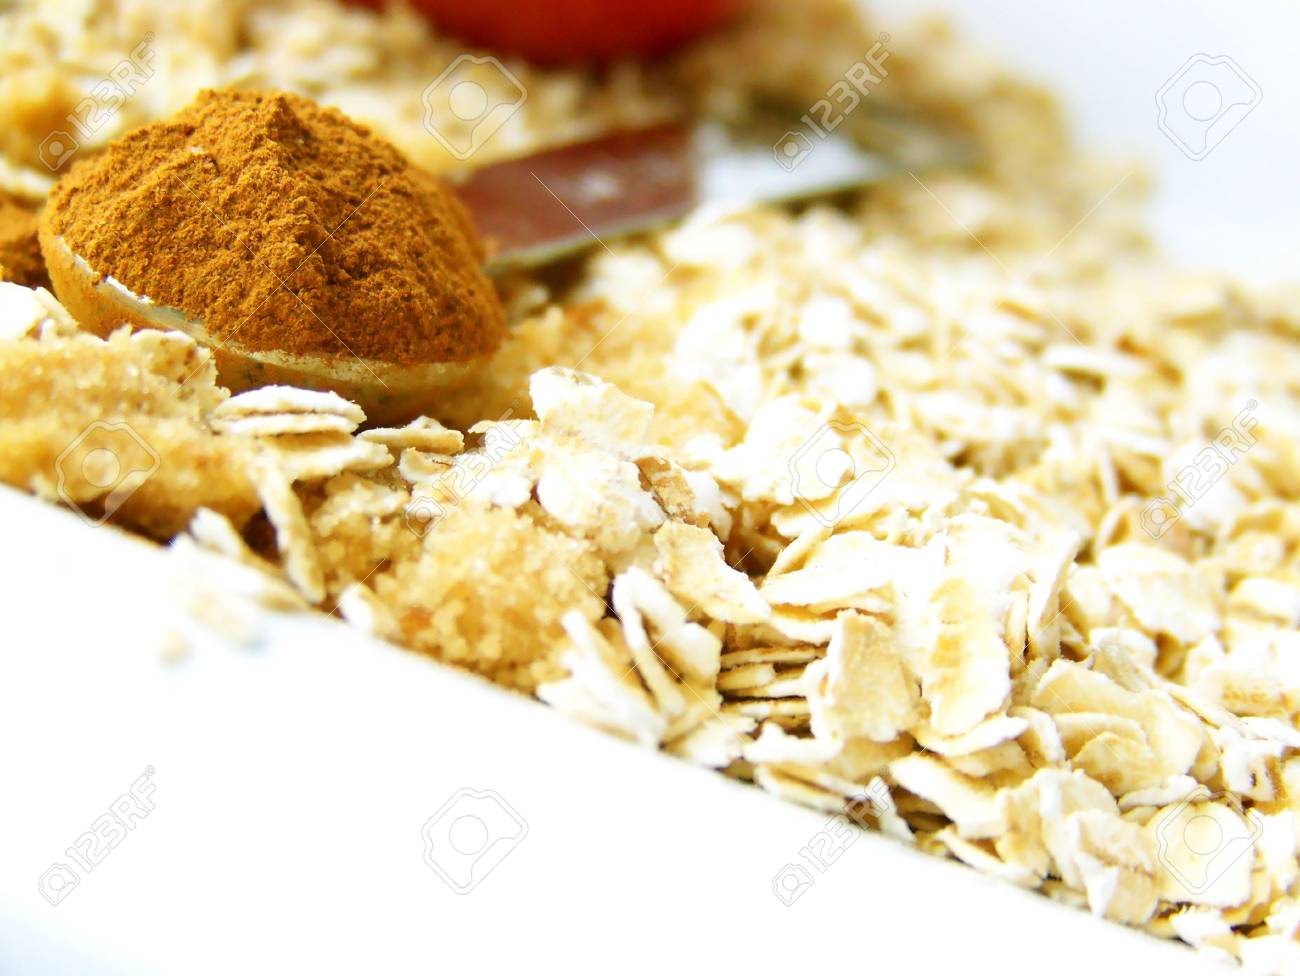 image of a heaping spoonful of cinnamon with brown sugar and